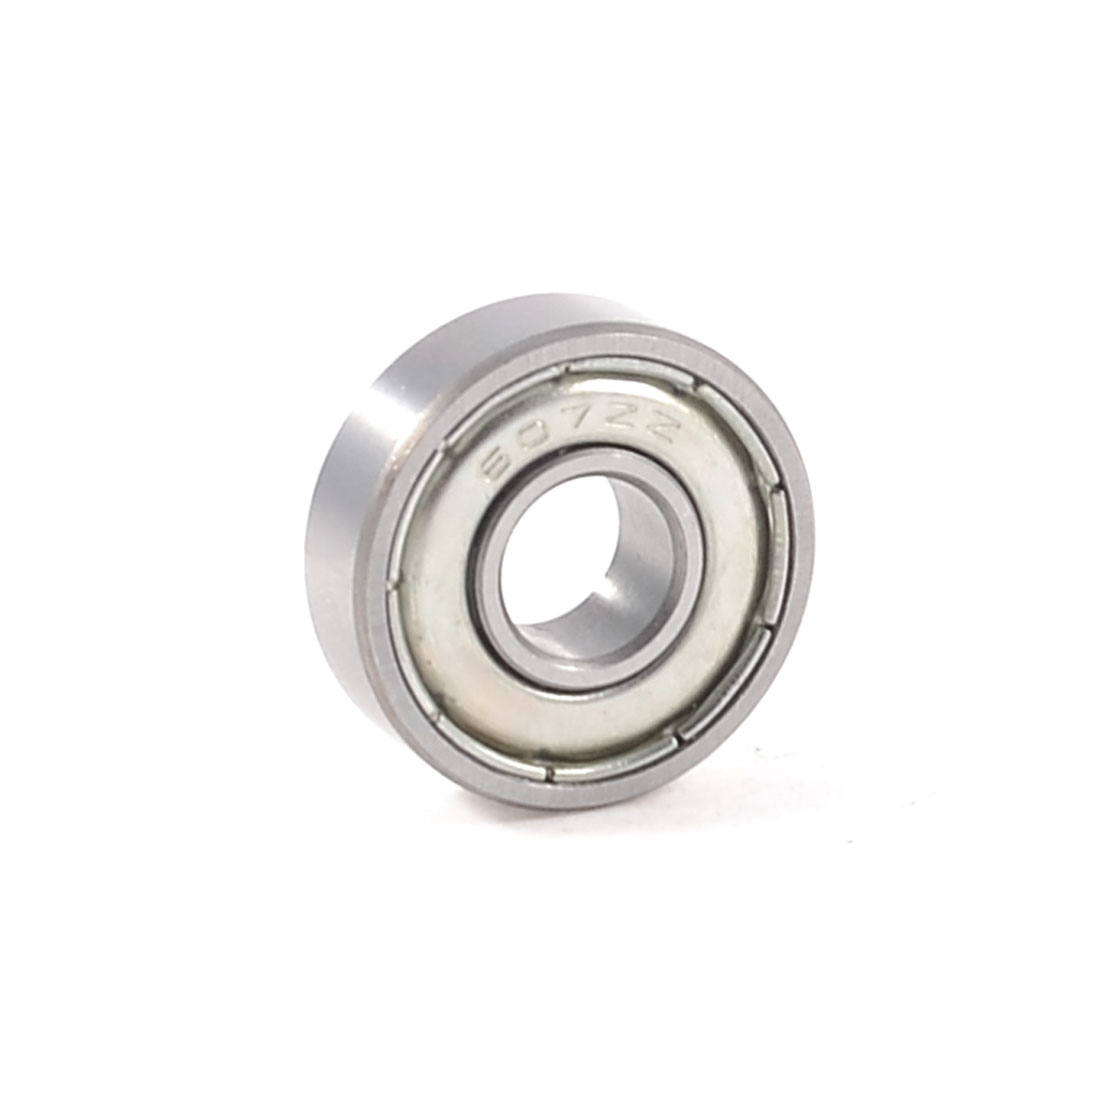 19mm x 7mm x 6mm Single Row Sealed Deep Groove Ball Bearing 607ZZ